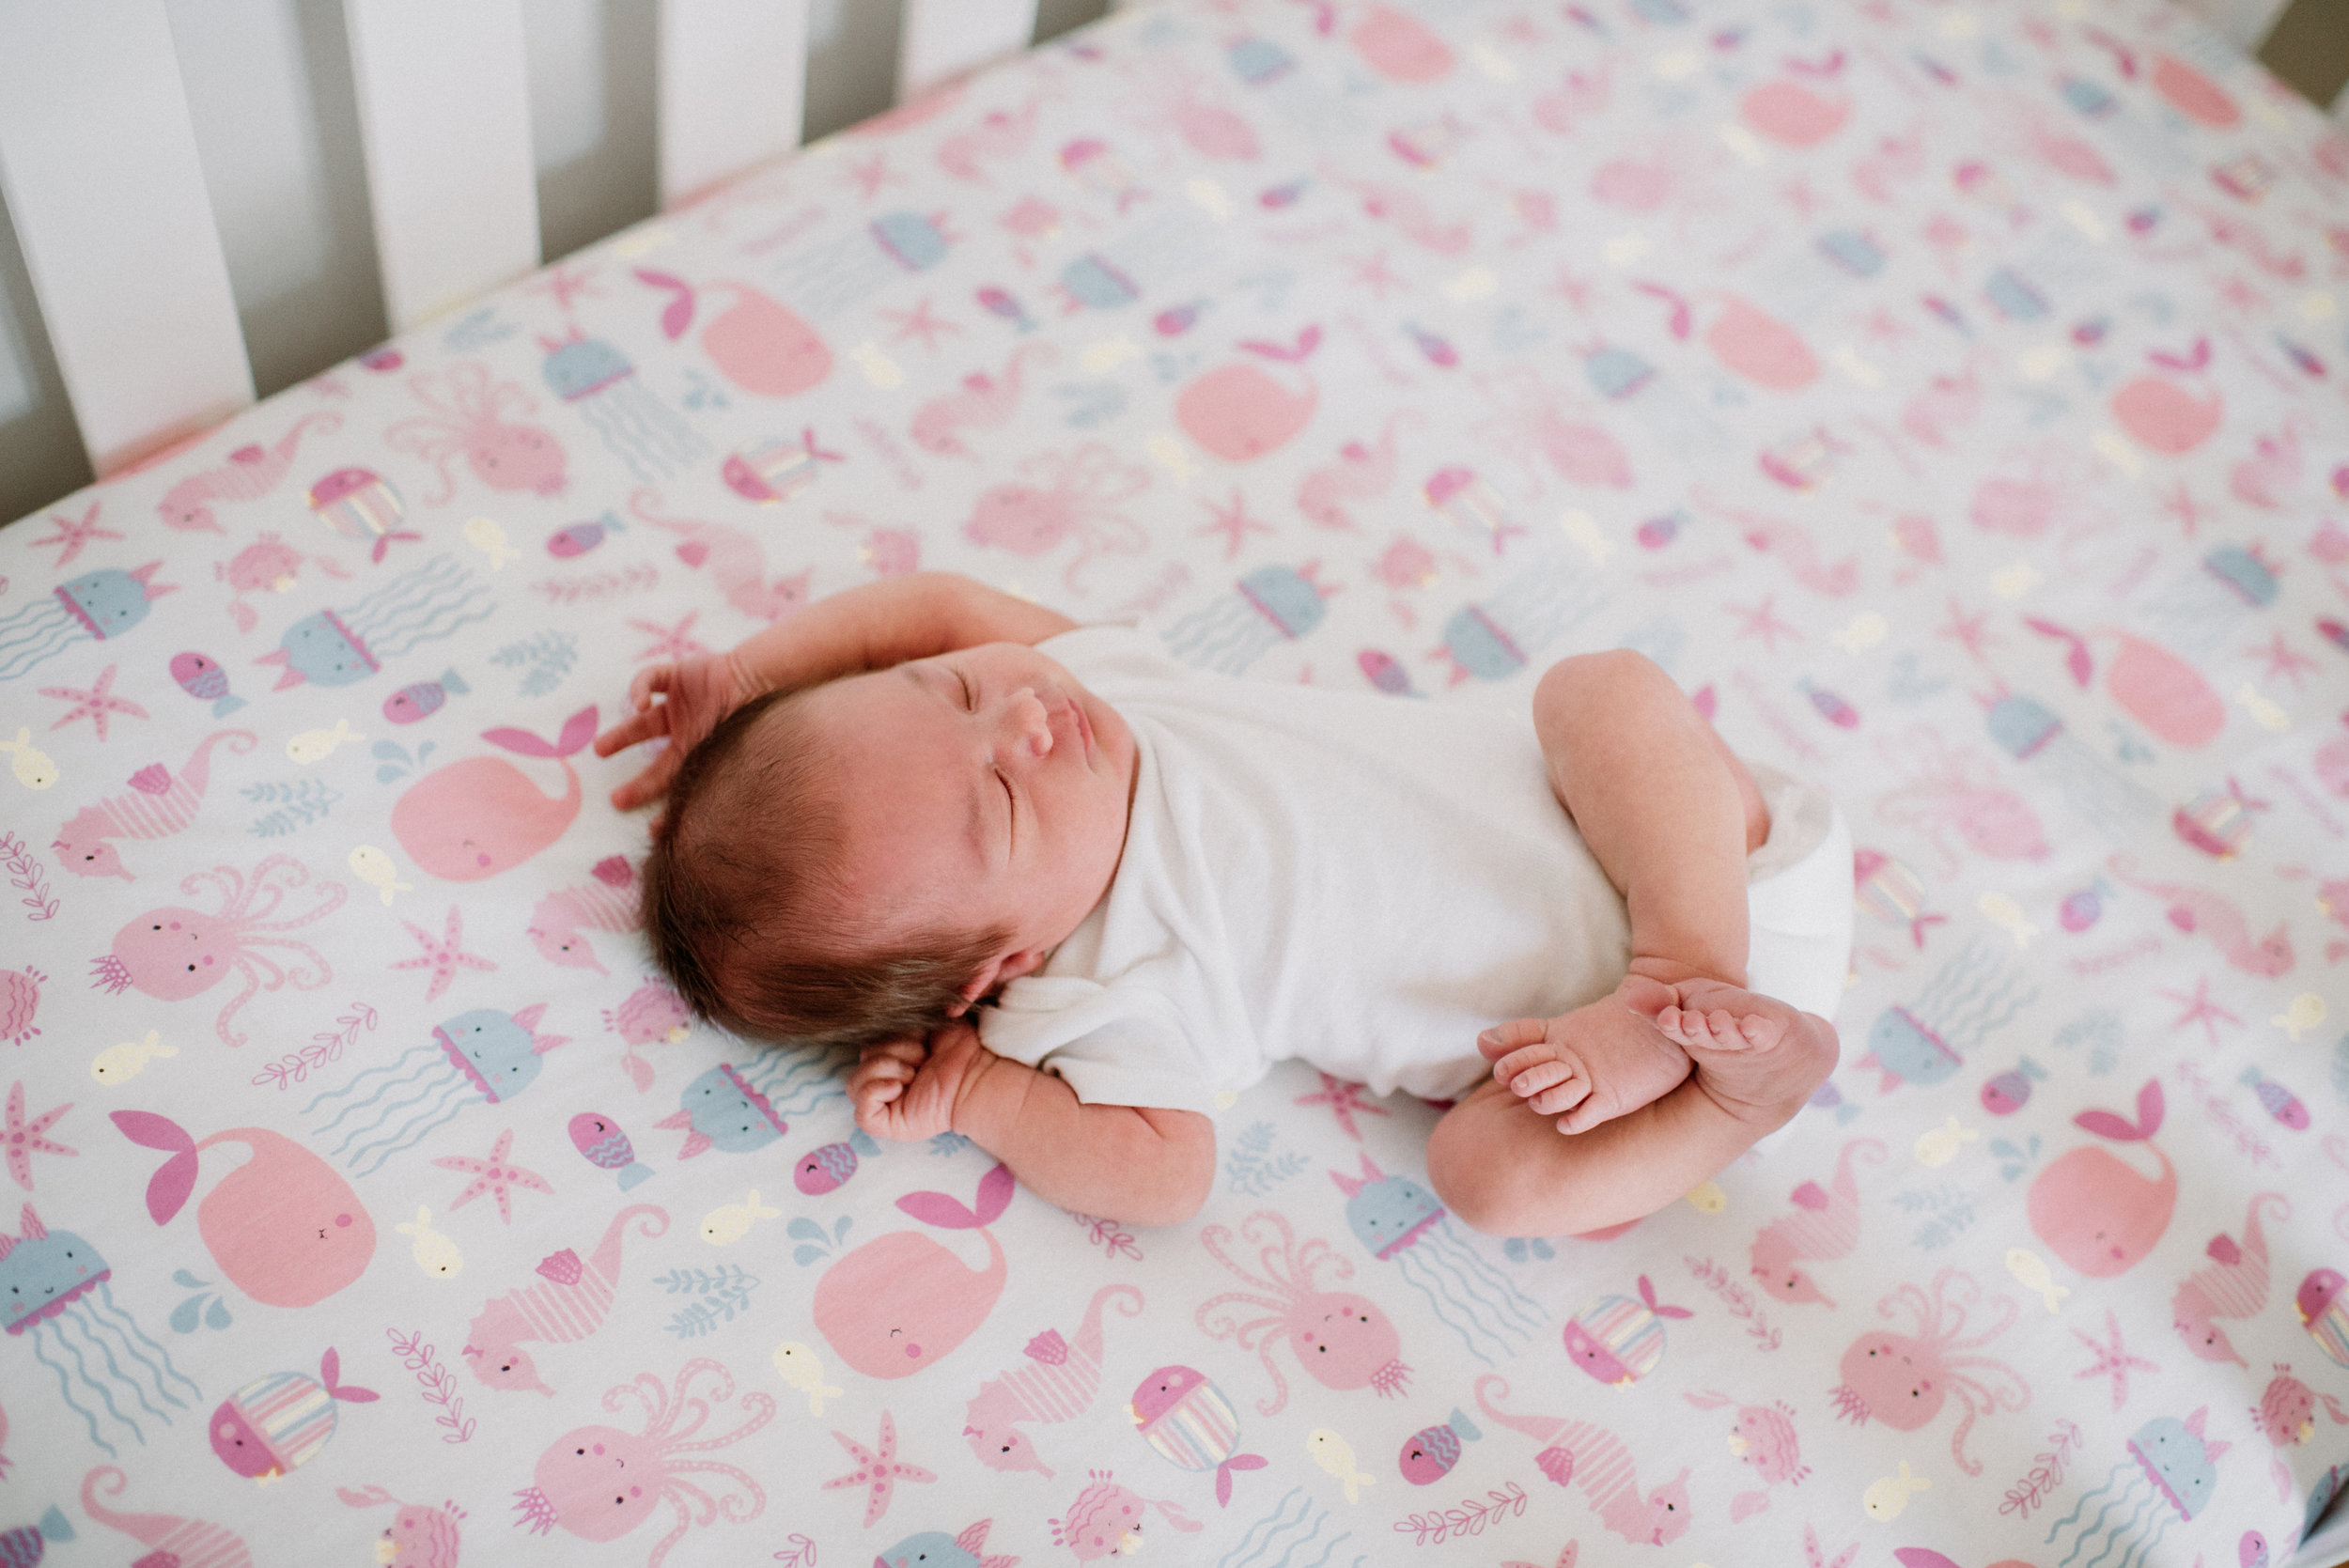 Newborn Lifestyle - $4451-2 hours | 45+ Edited Photos | Print ReleaseSessions done in an all white studio or in the comfort of your own home within the first 5-14 days.